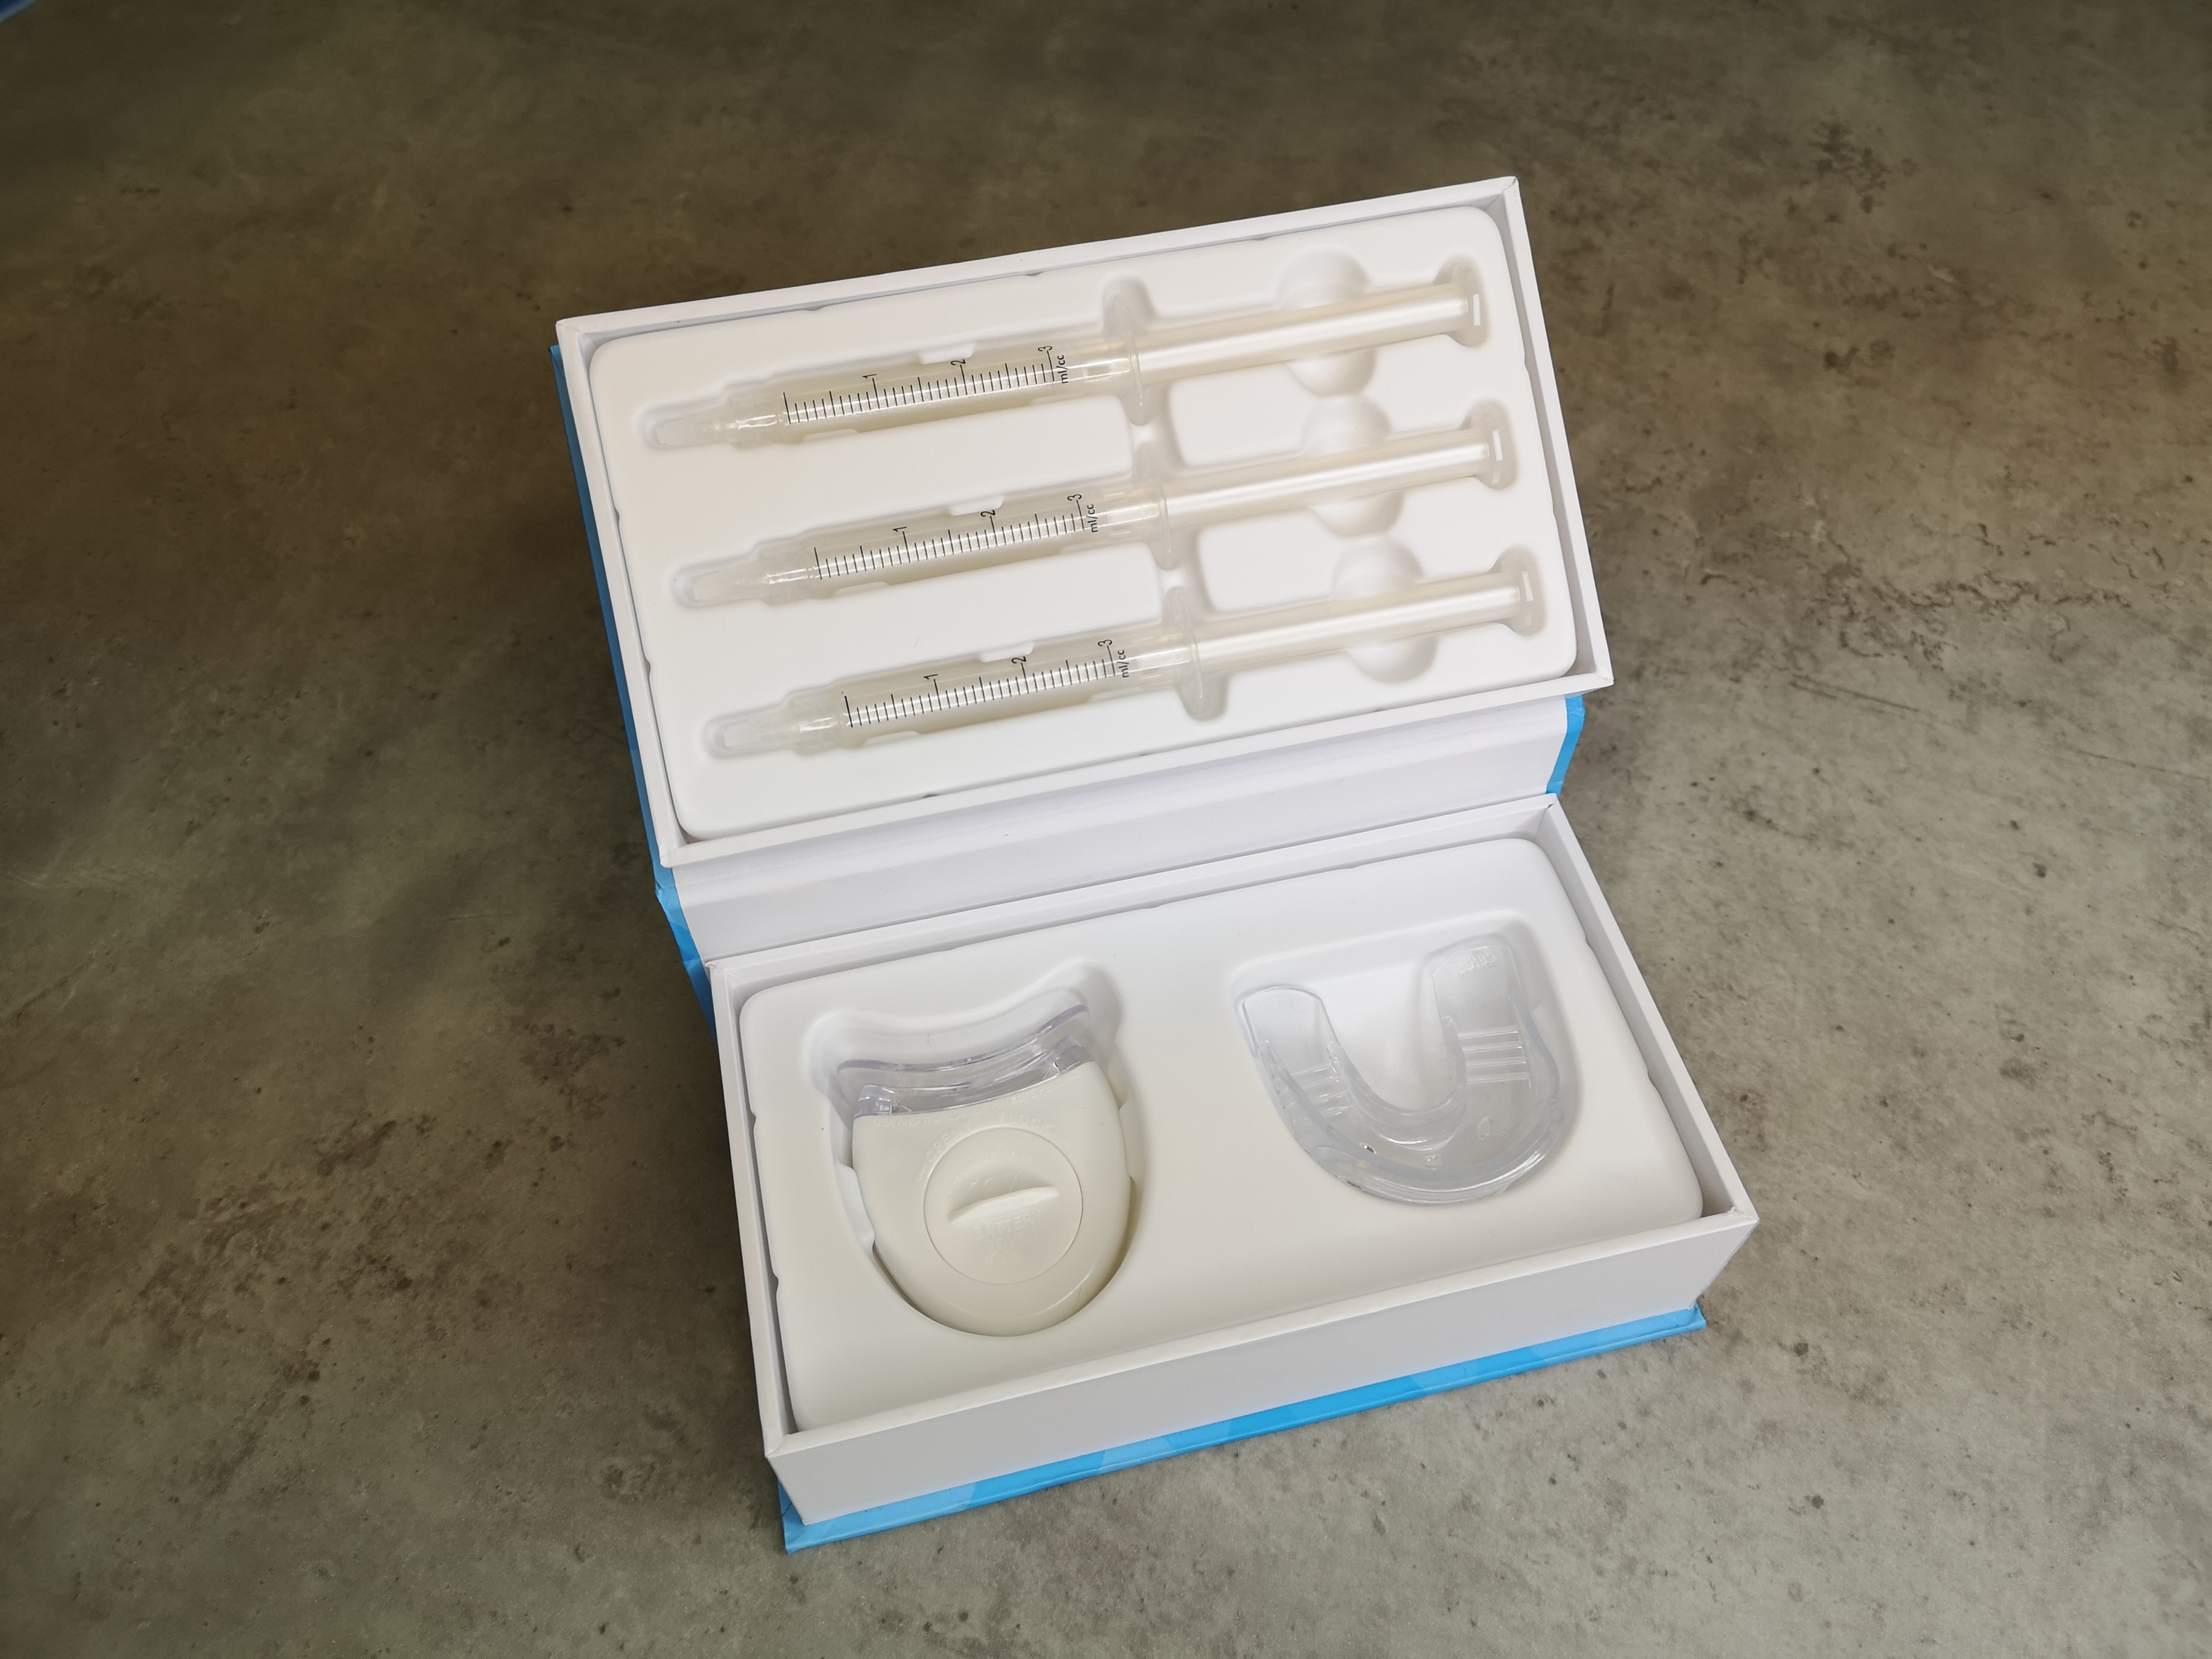 Manufacturing Your Own Teeth Whitening Kit with LED Light